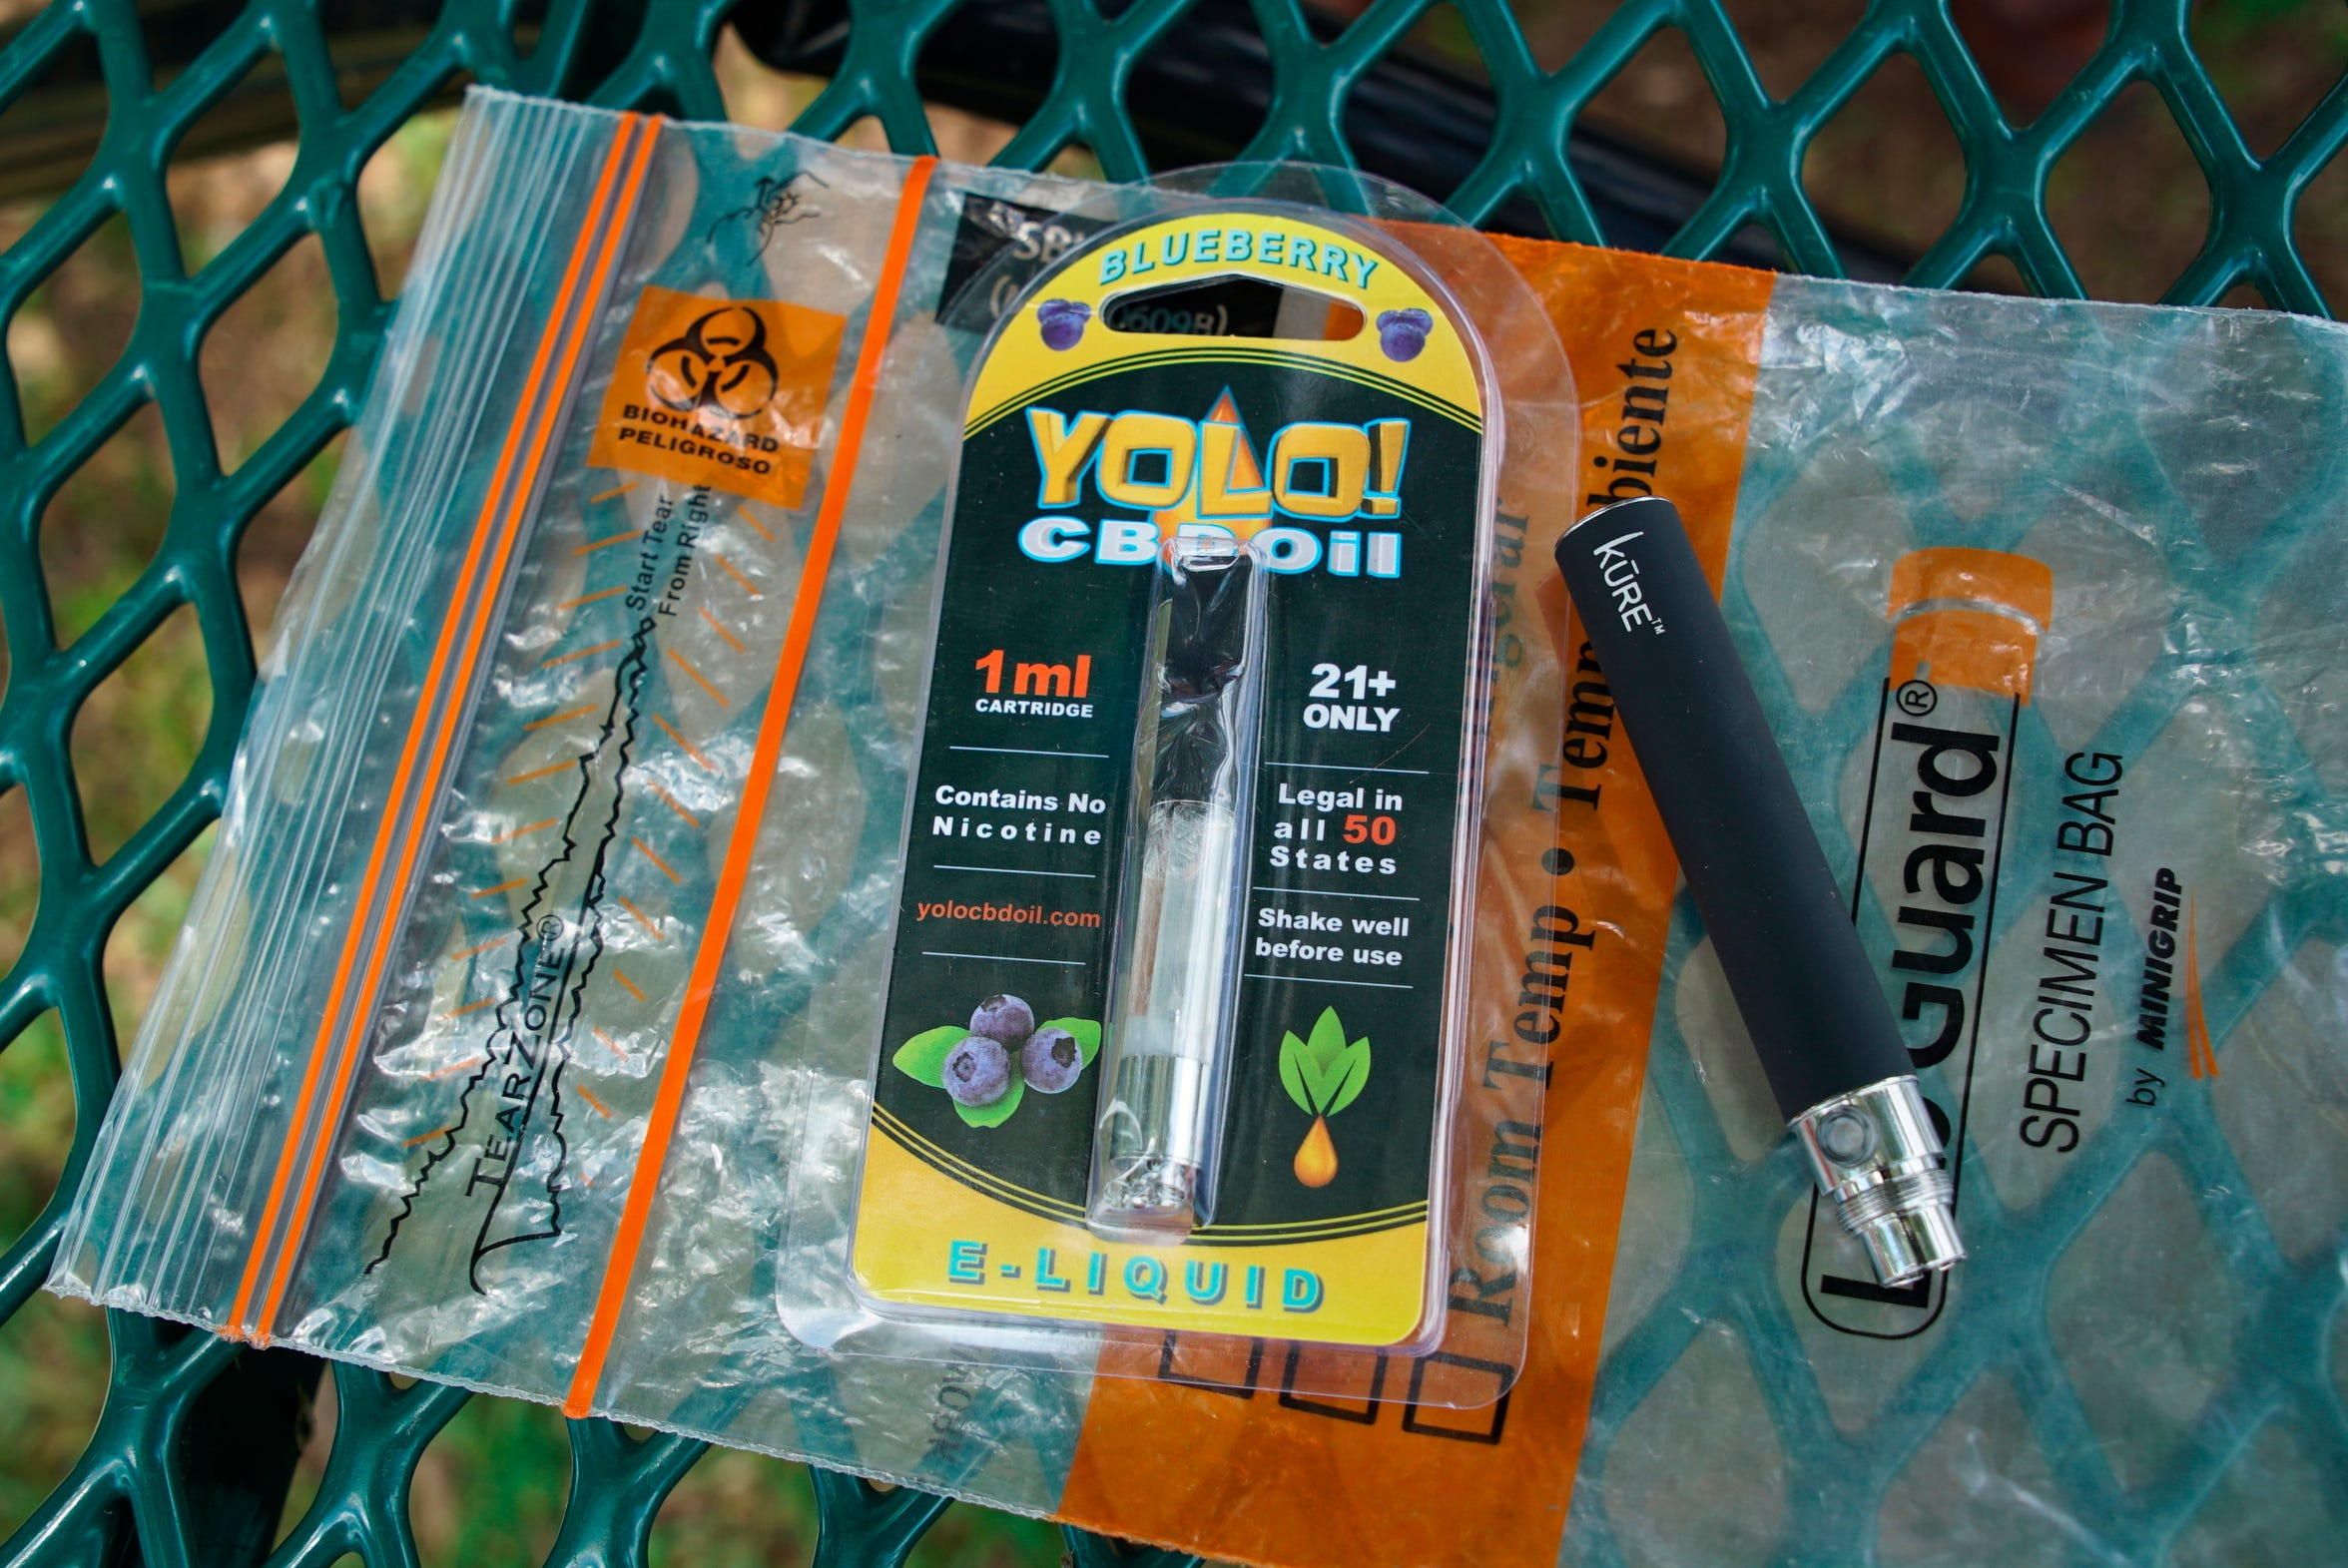 A Yolo! brand CBD oil vape cartridge sits alongside a vape pen on a biohazard bag on a table at a park in Ninety Six, S.C., on Wednesday, May 8, 2019.